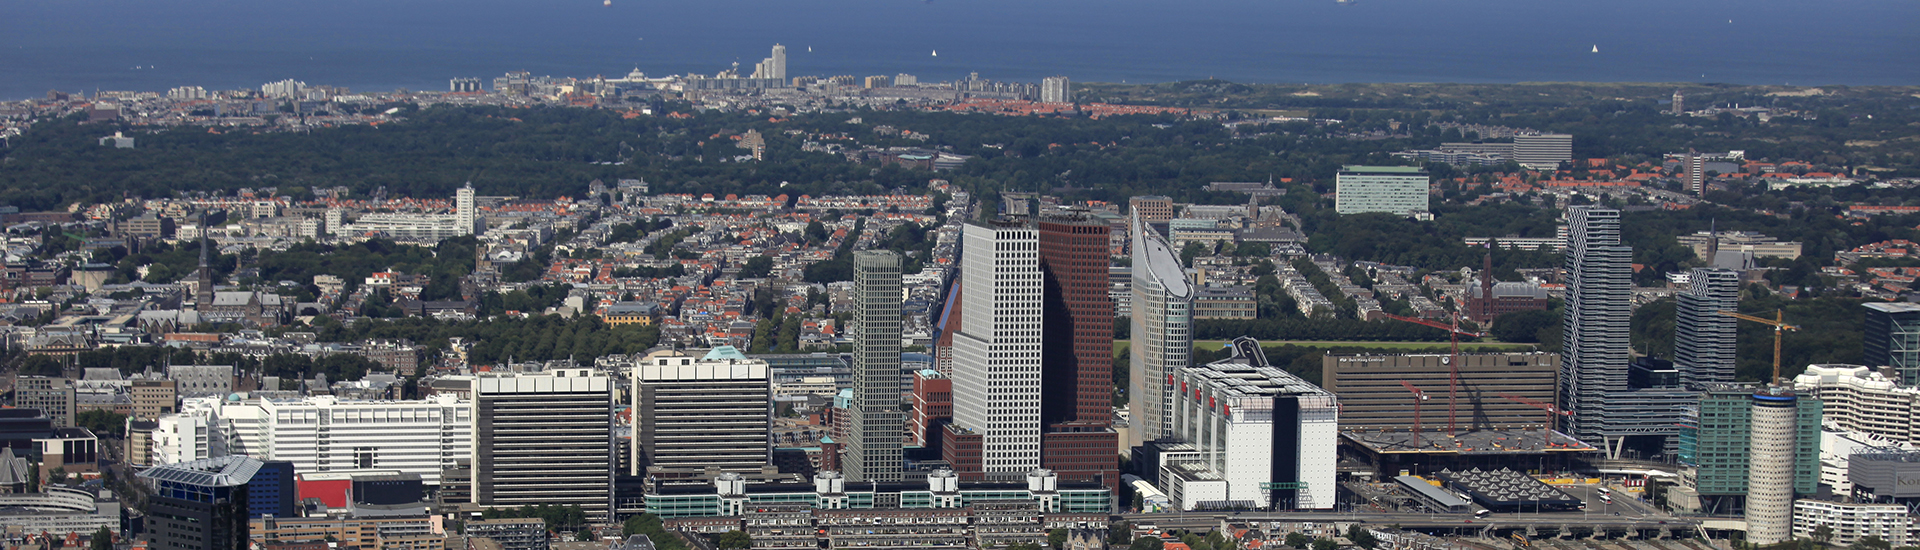 aerial_thehague_003